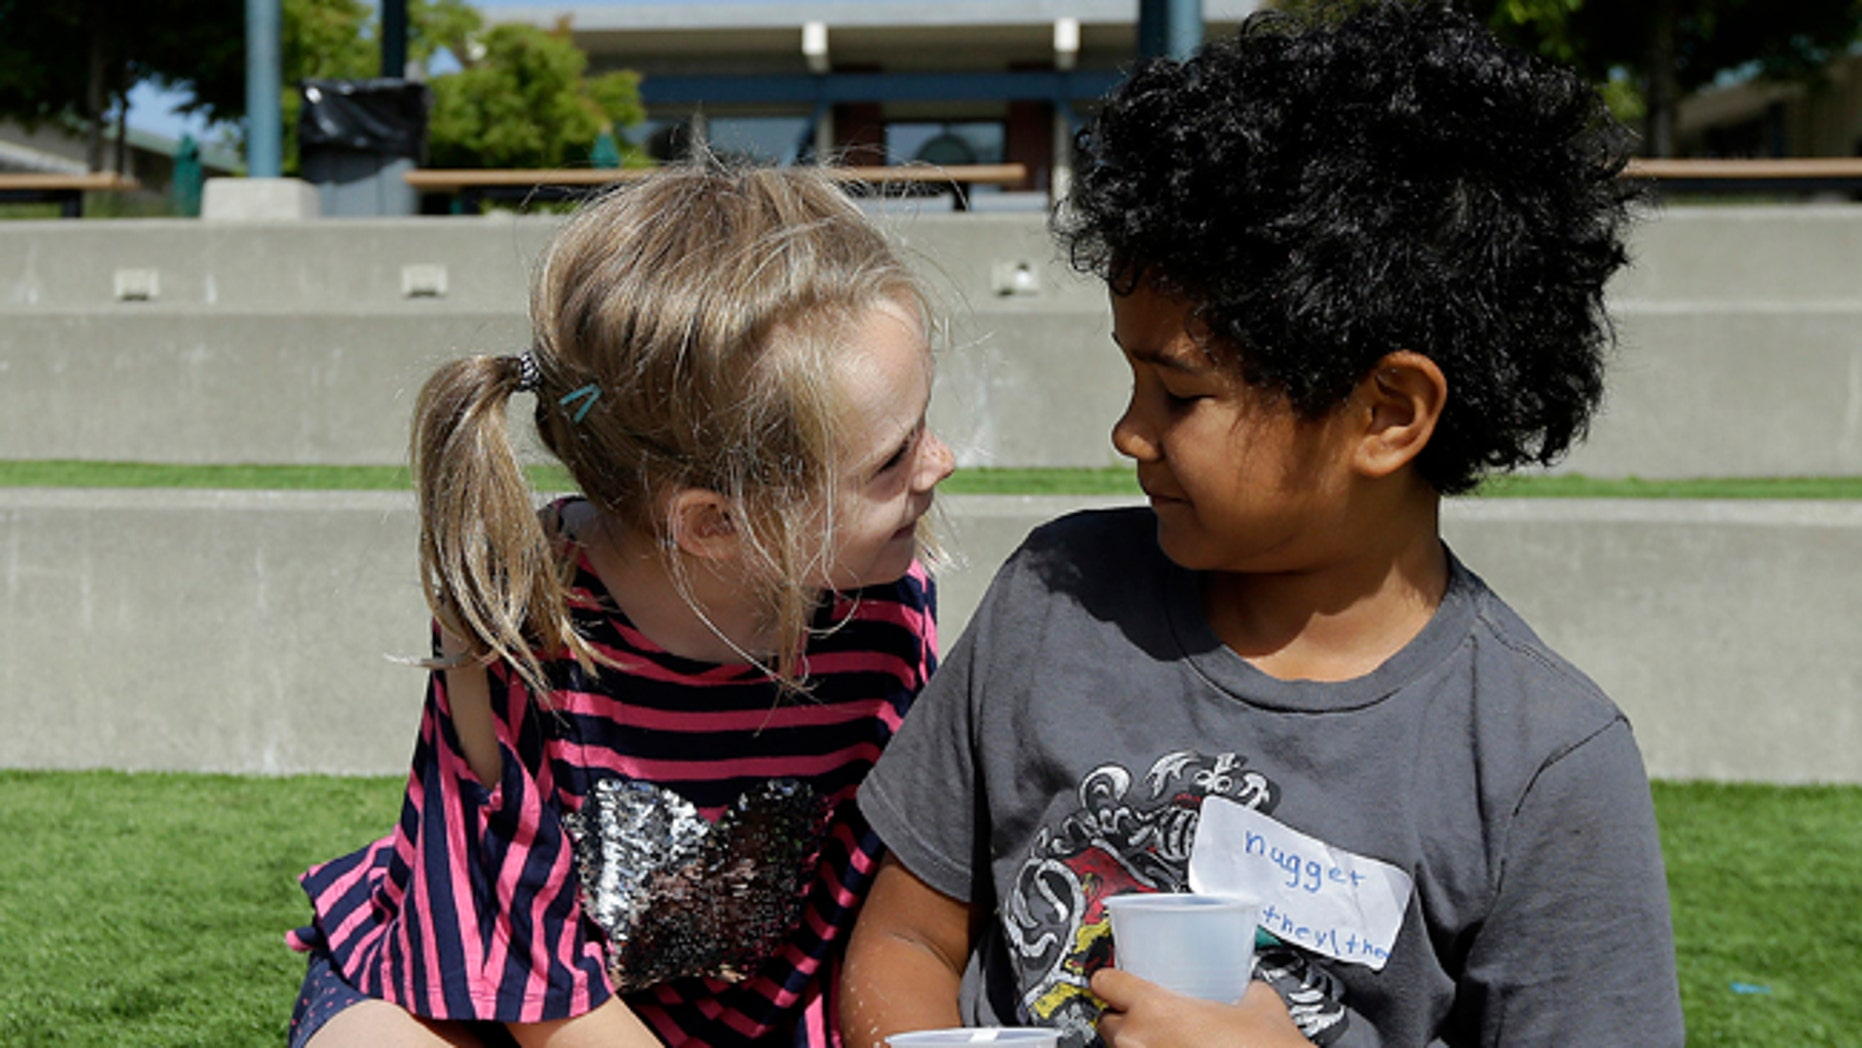 Campers Gracie, left, leans toward Nugget during an activity at the Bay Area Rainbow Day Camp in El Cerrito, Calif., in this July 11, 2017 photo.